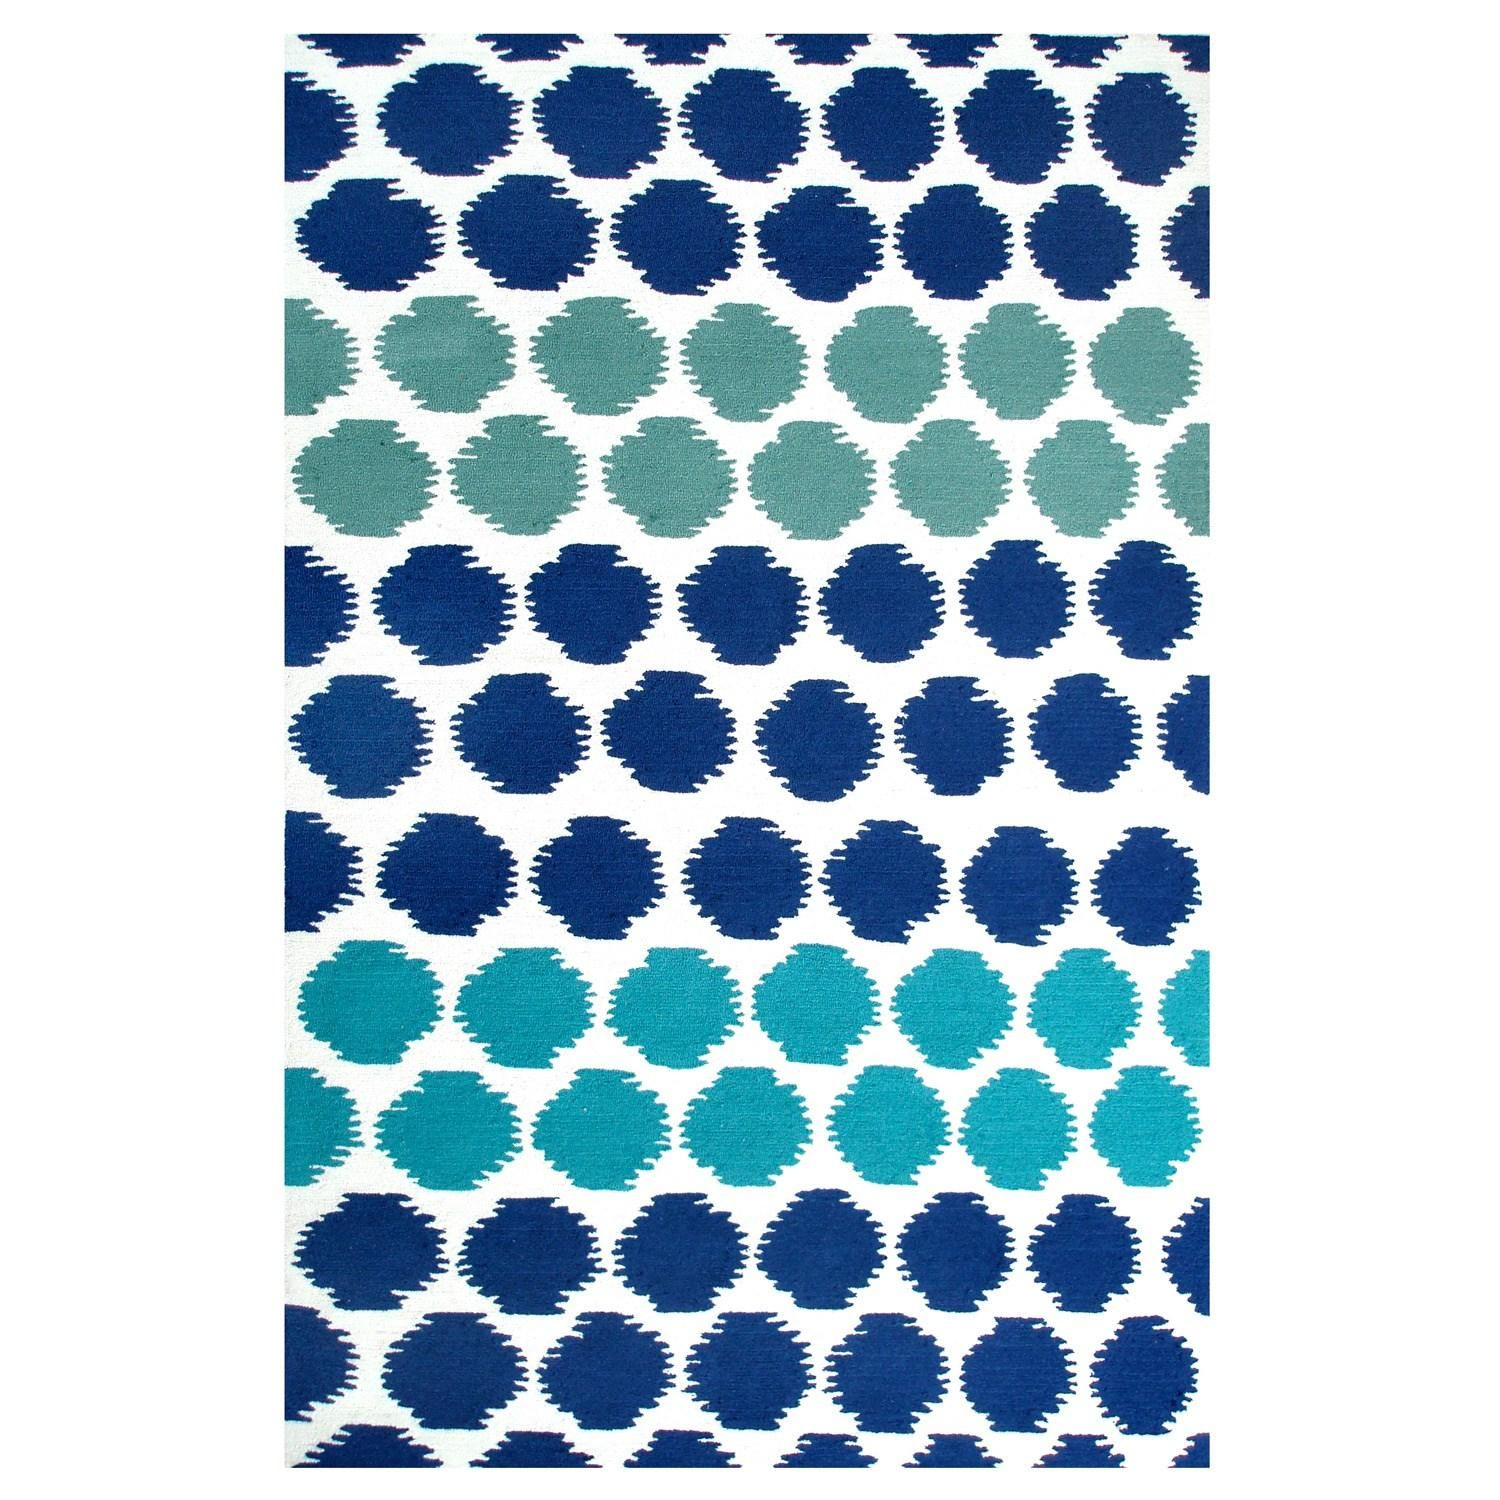 A Fun Polka Dot Rug In Navy Blue Turquoise And Teal Makes A Modern